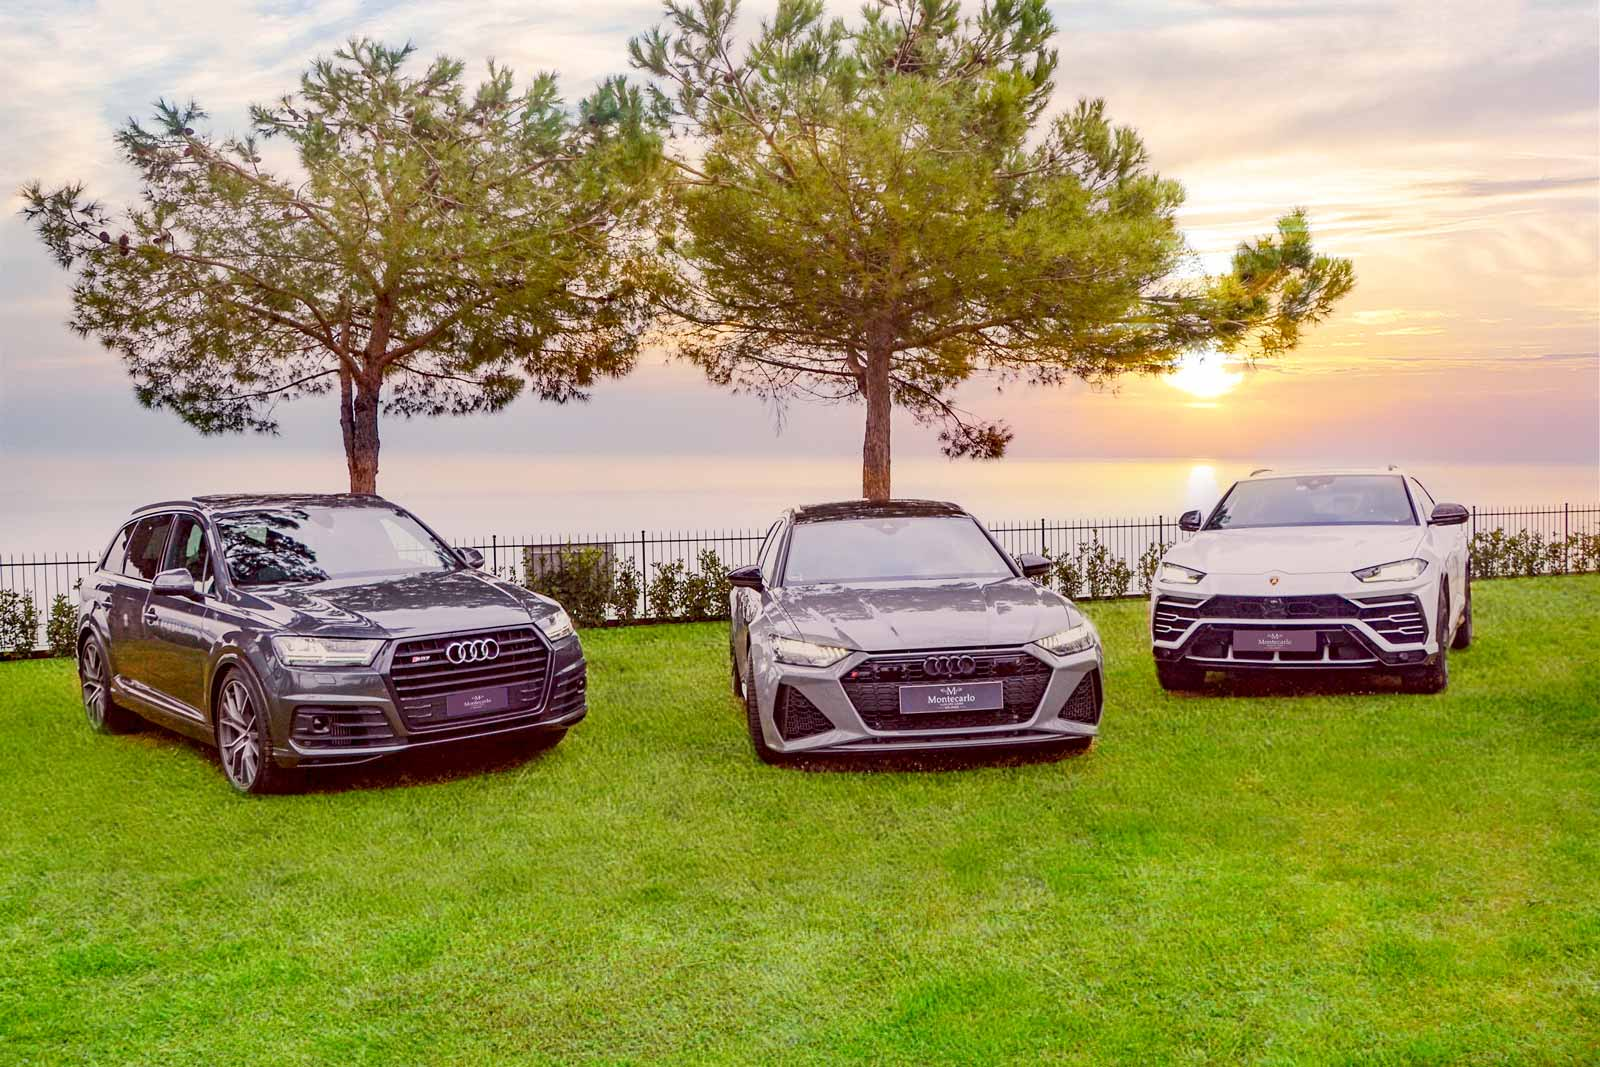 Rent Luxury Car in Cannes with Montecarlo Luxury Cars